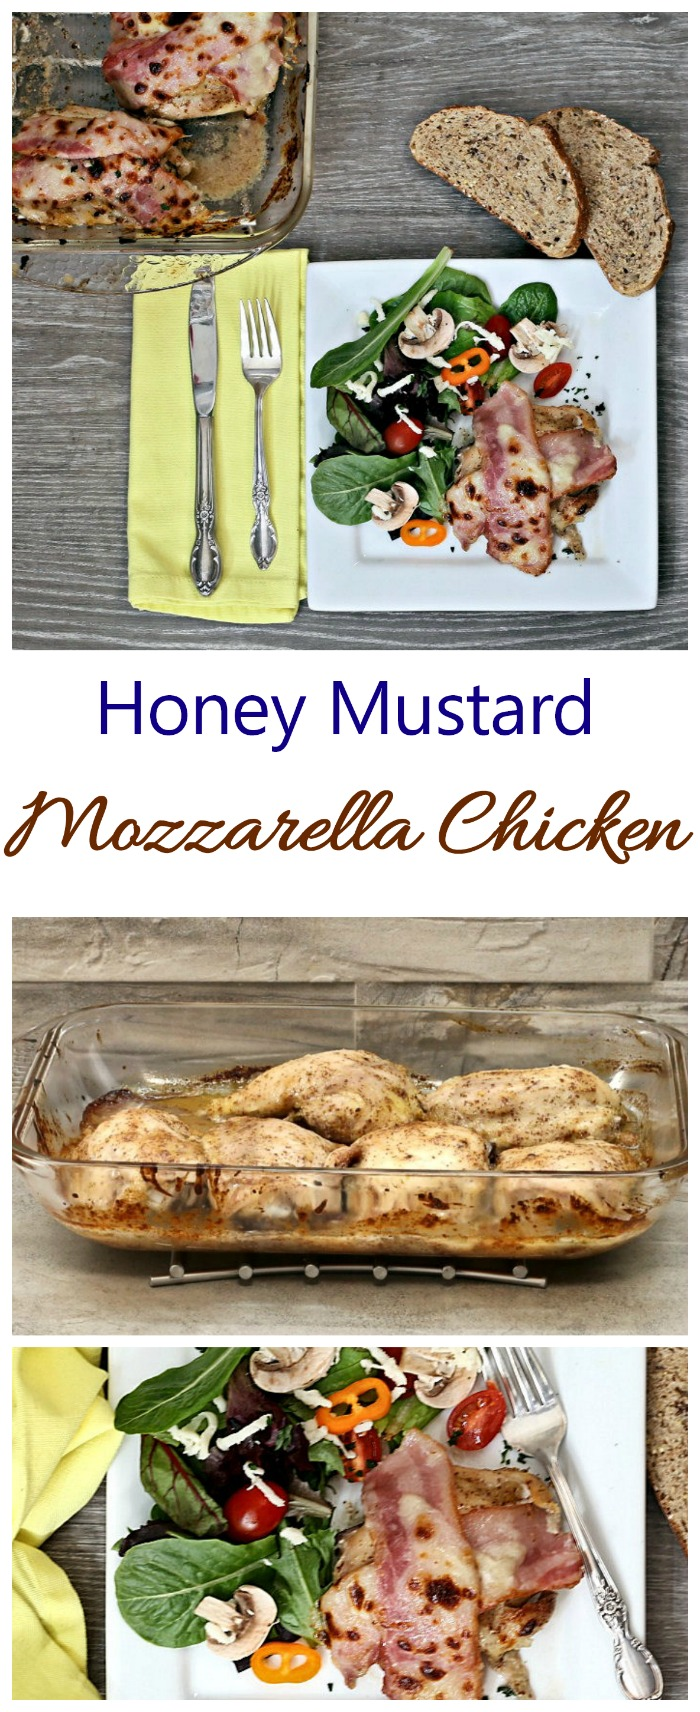 This mozzarella chicken has a delicious honey mustard and bacon topping.